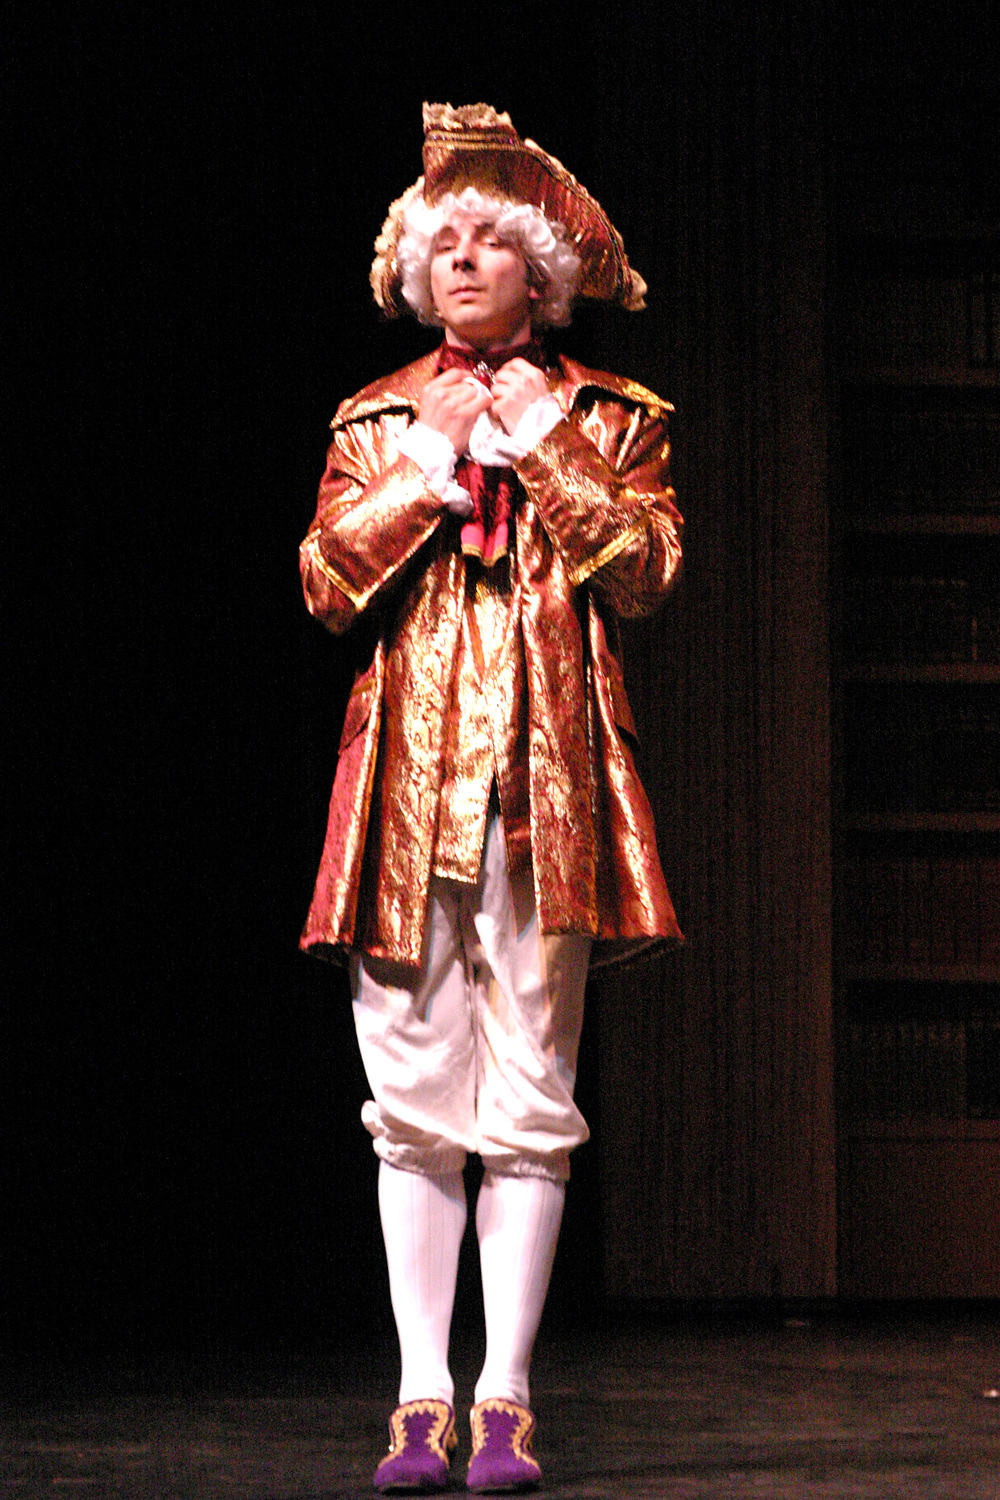 023 - The Scarlet Pimpernel 2005 - Generale.jpg